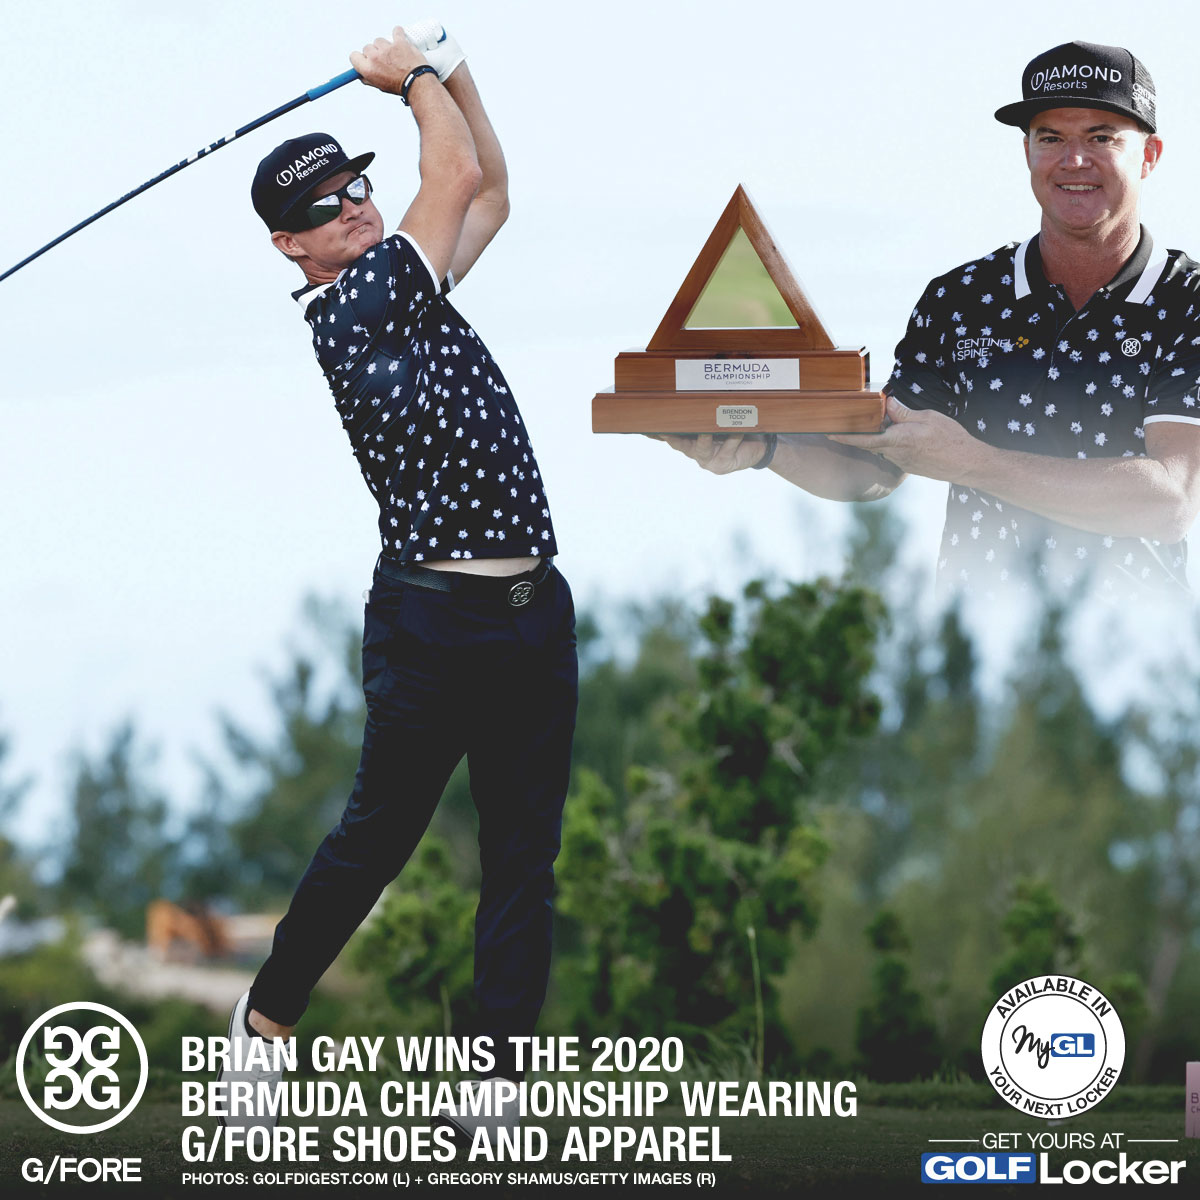 Brian Gay Wins Bermuda Championship Wearing G/FORE Gear